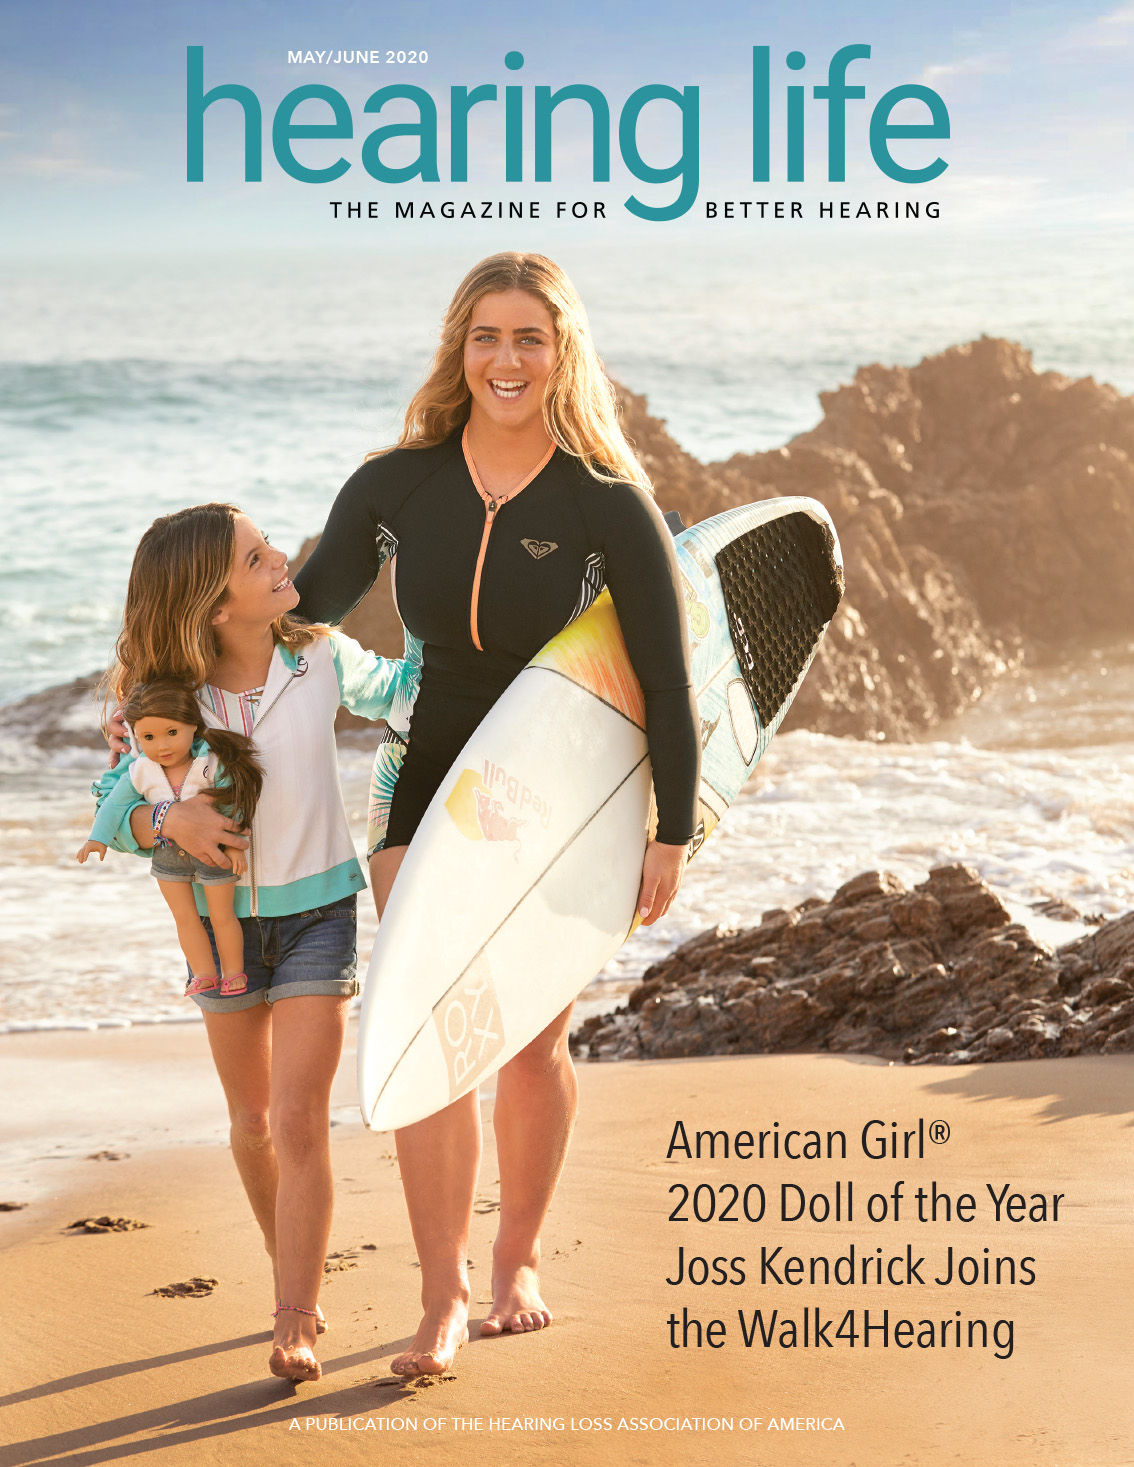 HLAA Hearing Life 2020 May/June Cover with two young ladies at the beach and American Girl 2020 Doll of the Year Joss Kendrick.